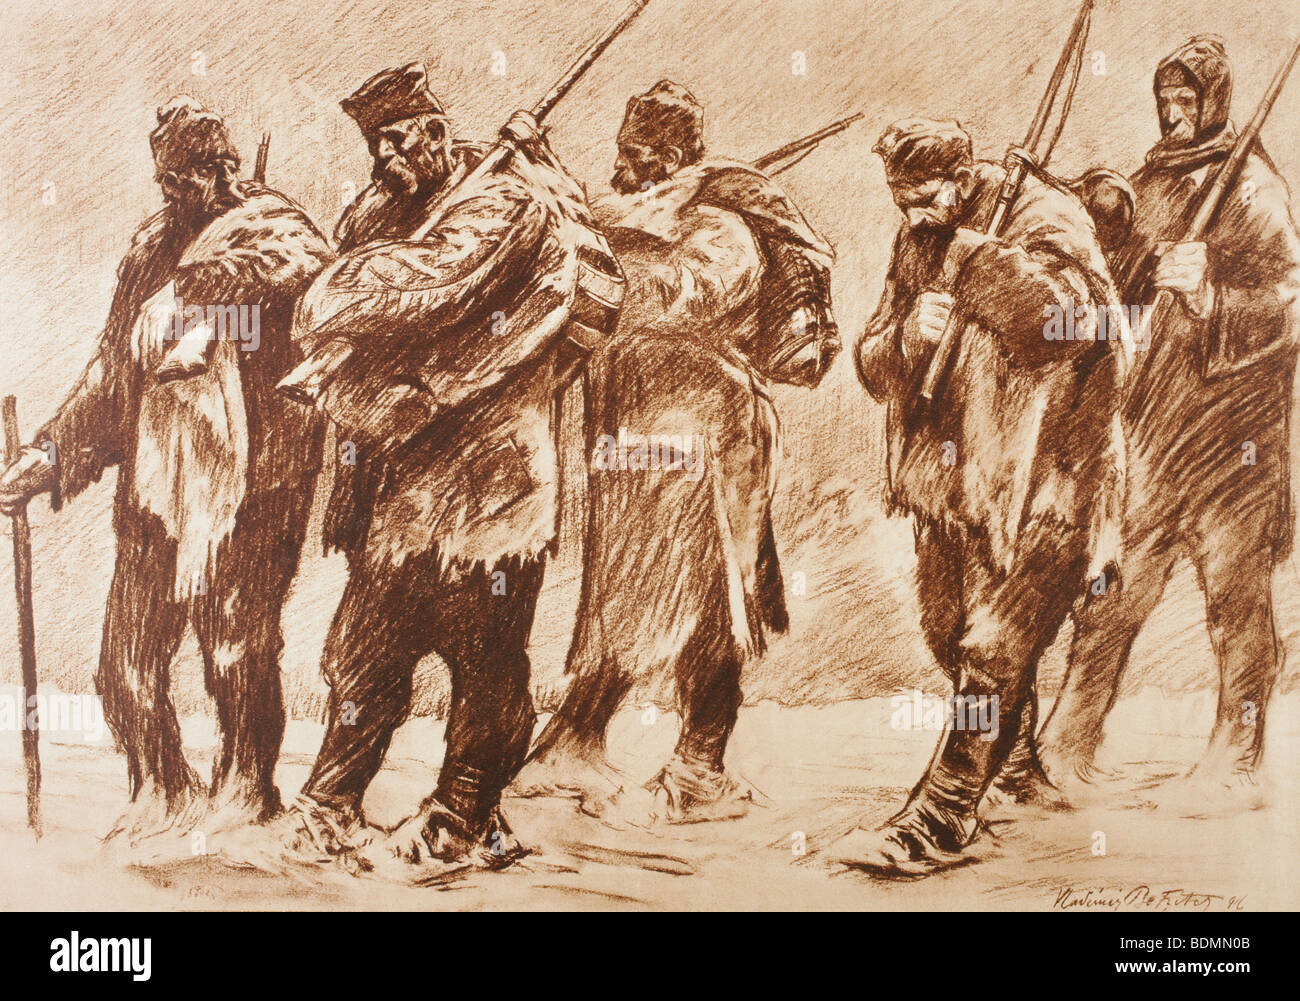 Survivors of a Serb battalion after the retreat of the army. - Stock Image